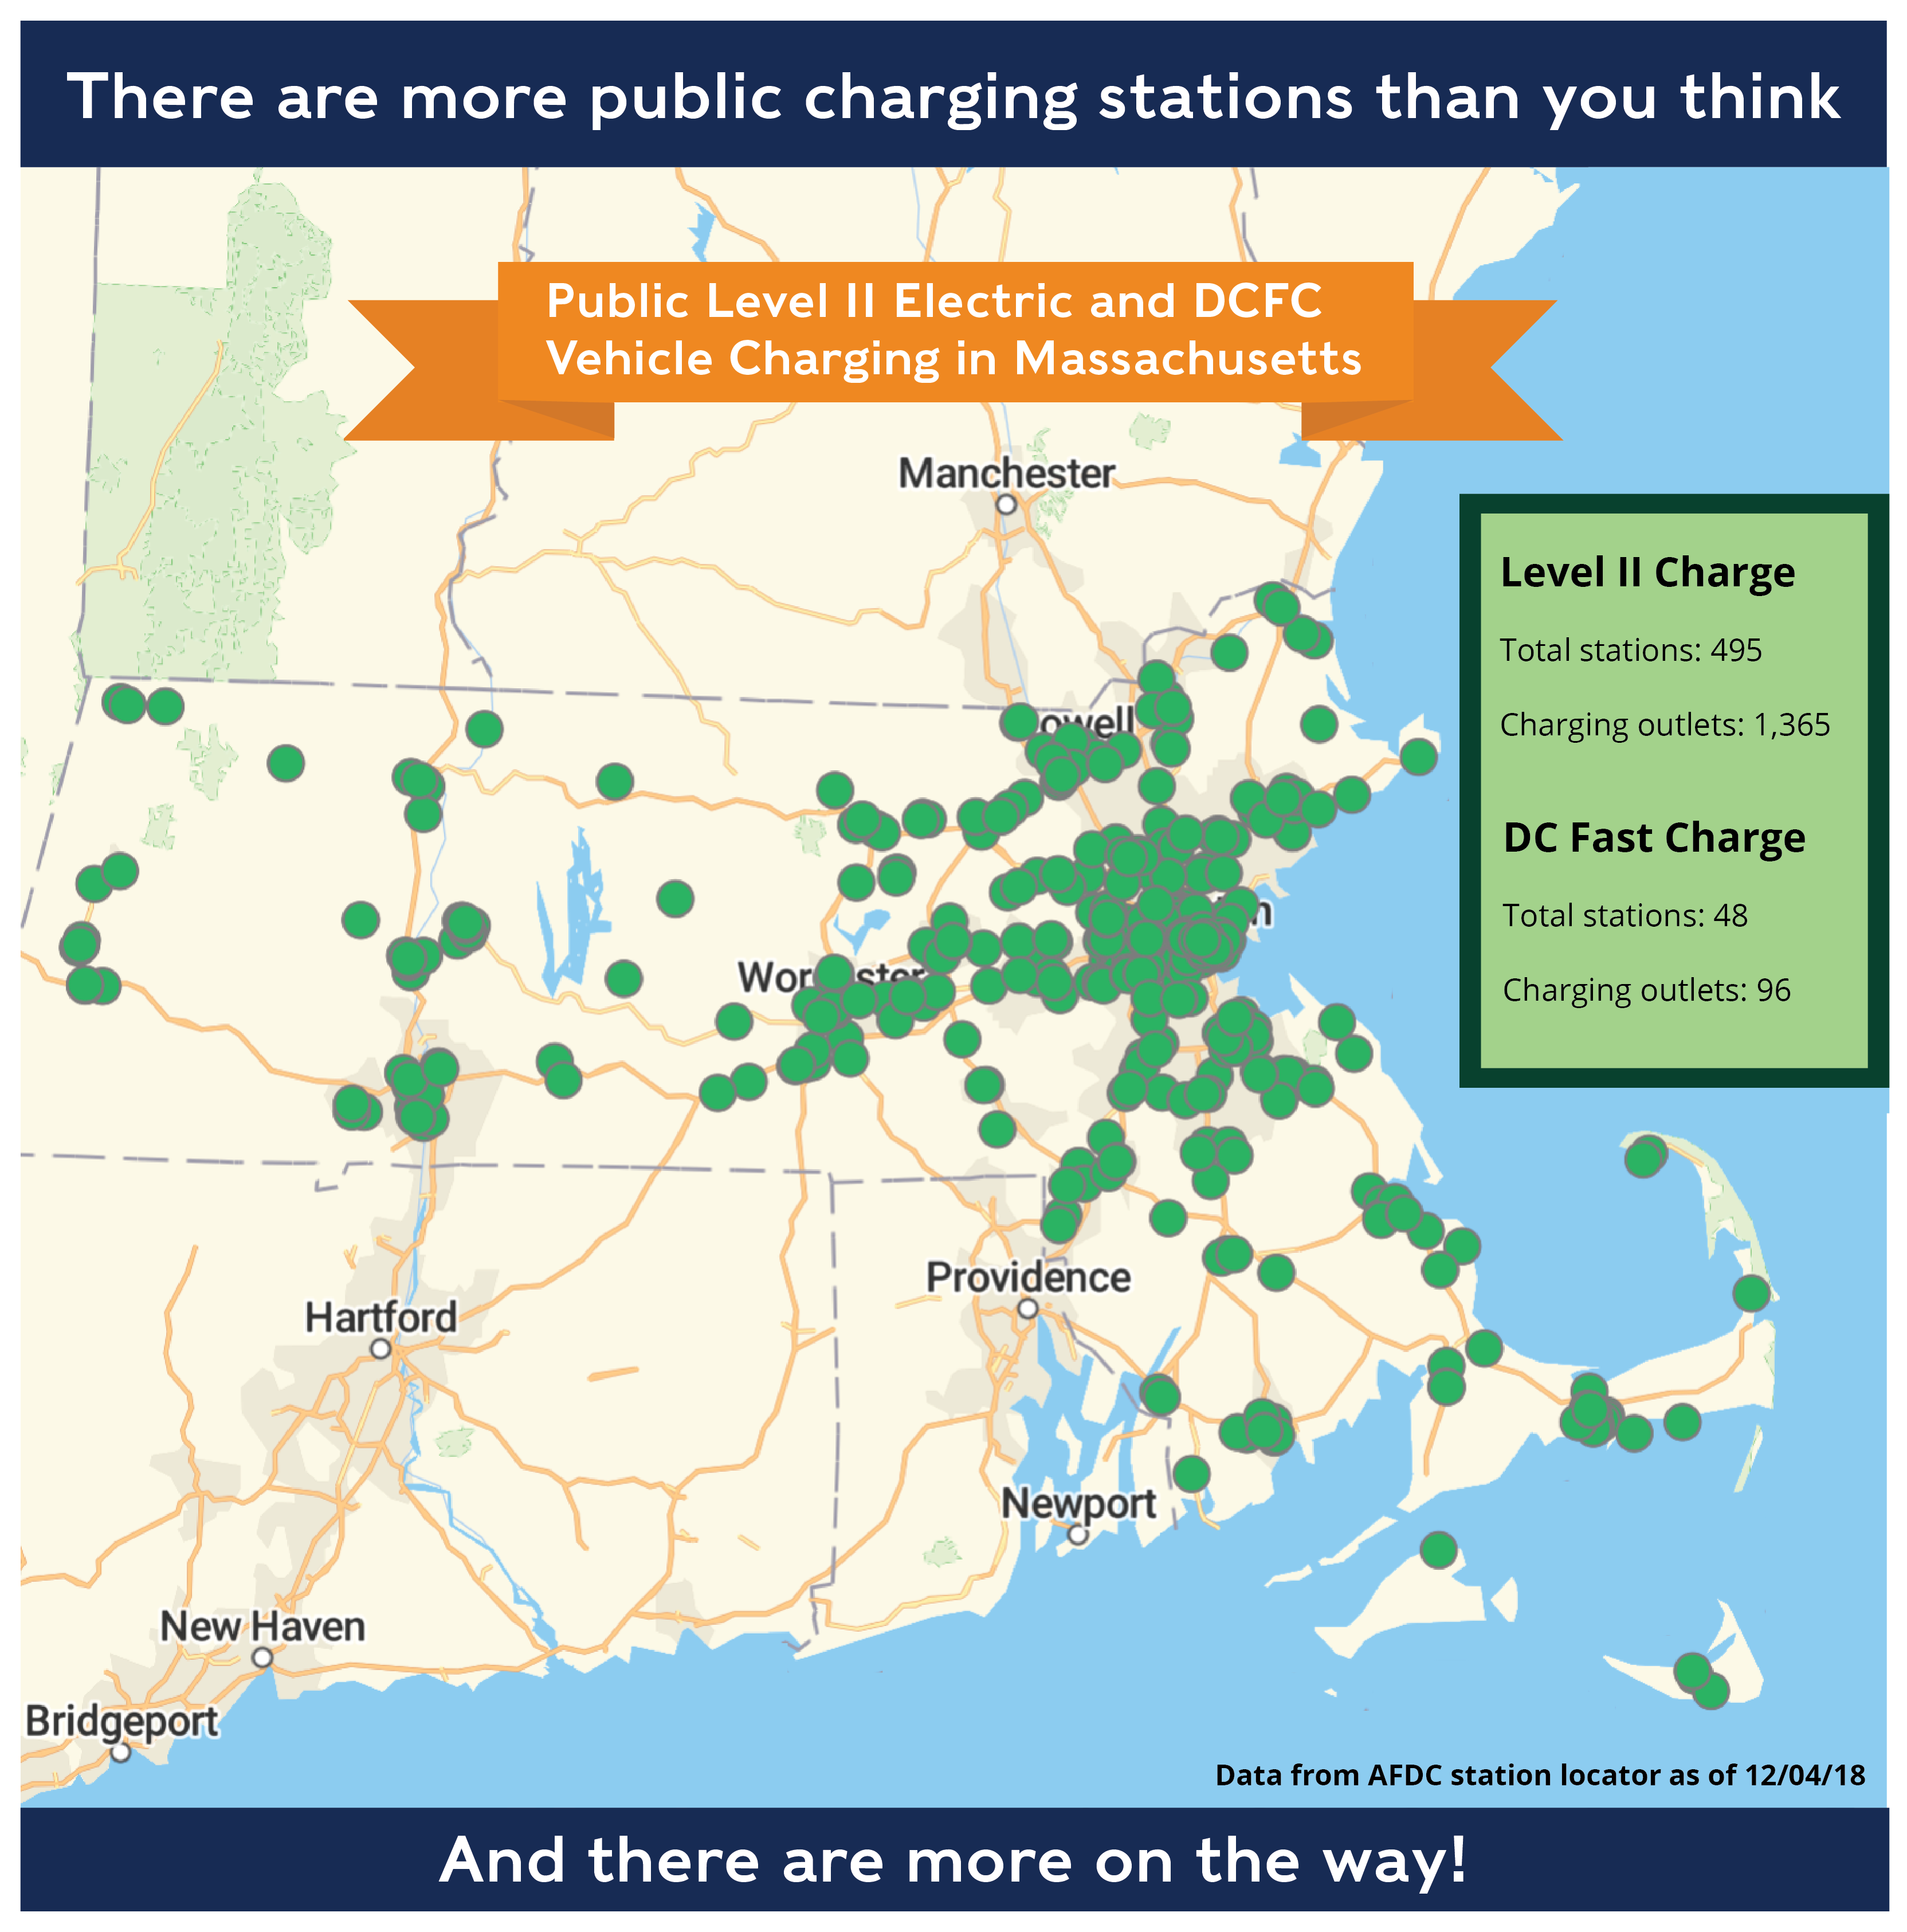 MA public charging as of 12.5.18